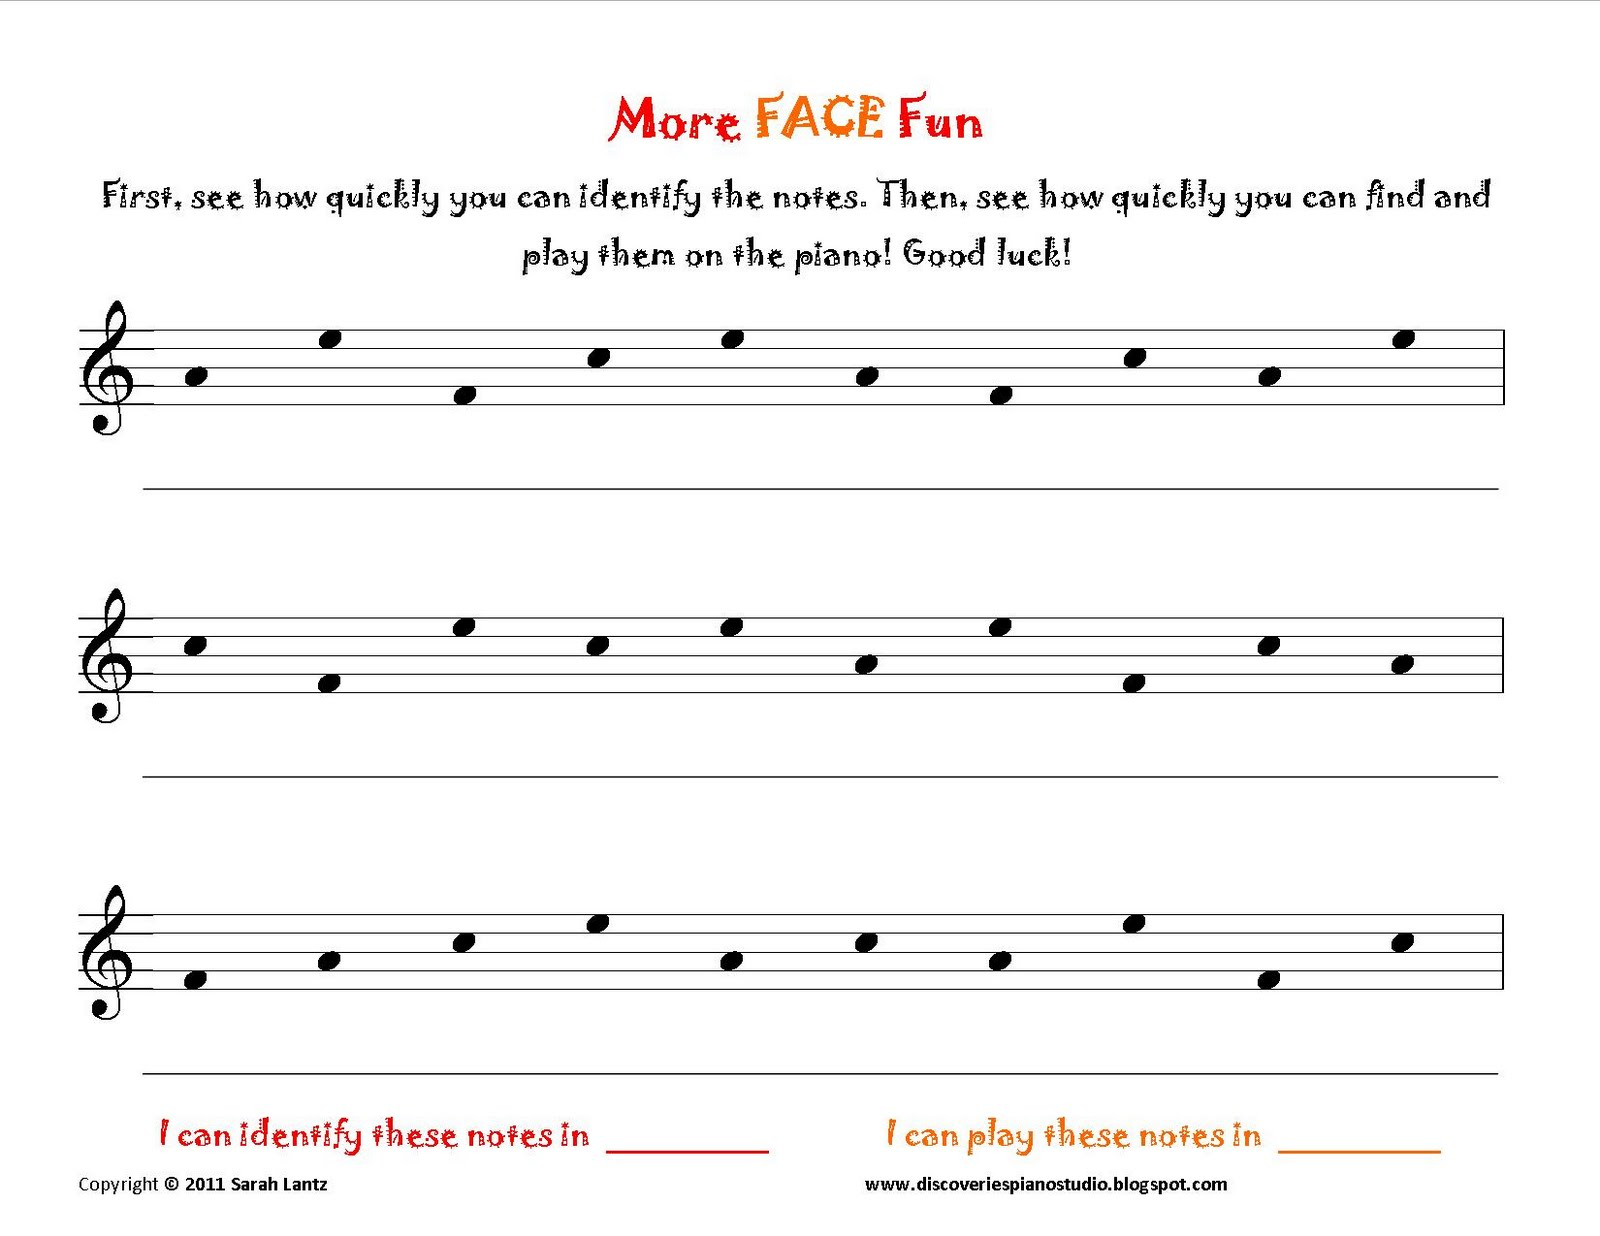 Worksheets Solfege Worksheets worksheet free music worksheets mytourvn study site solfege 1 pinterest for classroom instruction teaching music